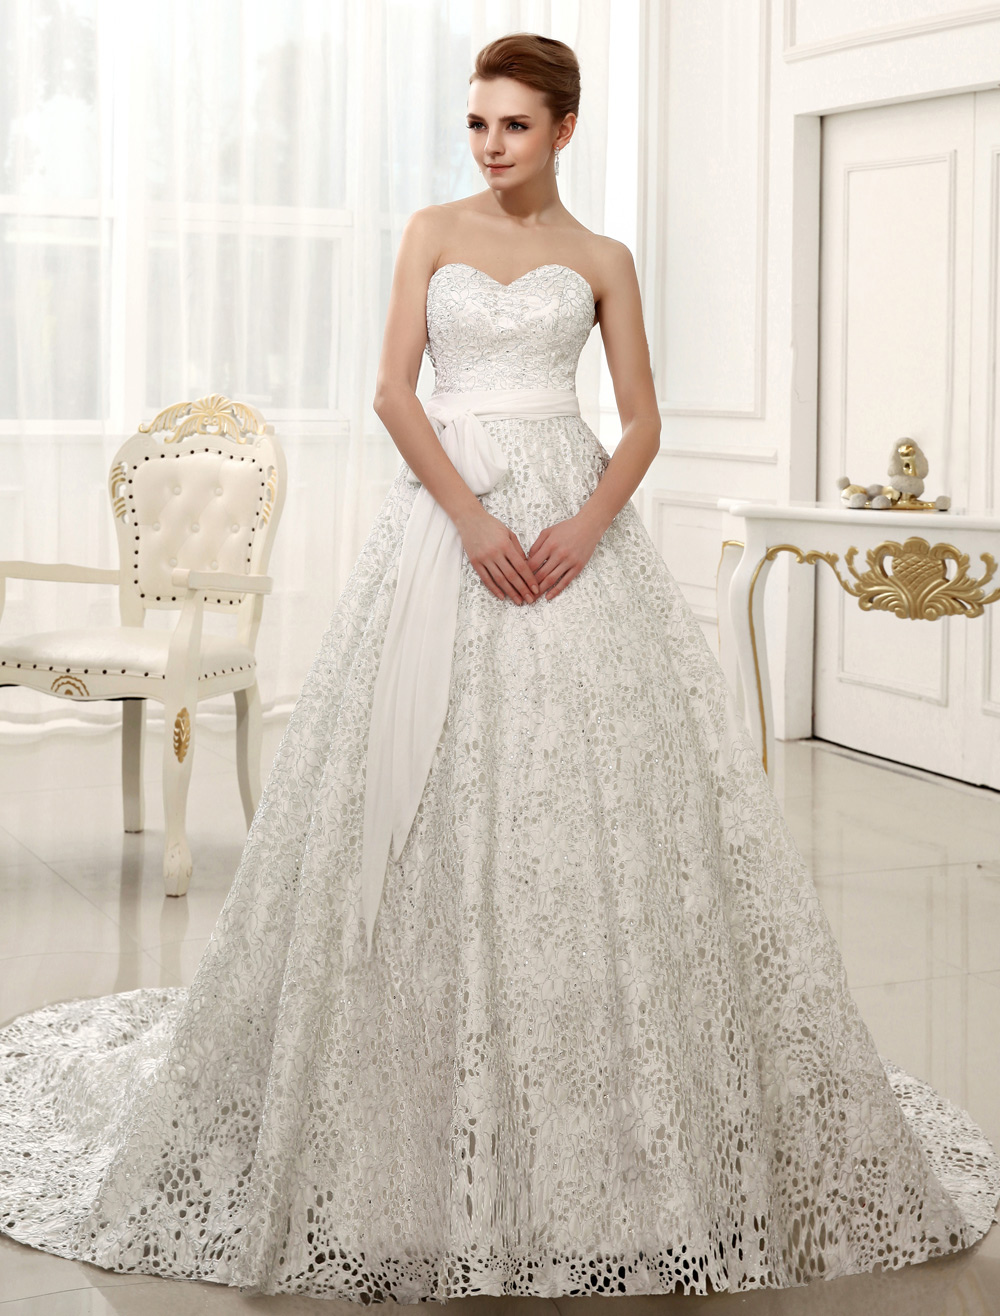 Chapel Train Ivory A-line Sash Wedding Dress For Bride with Sweetheart Strapless Neck  Milanoo